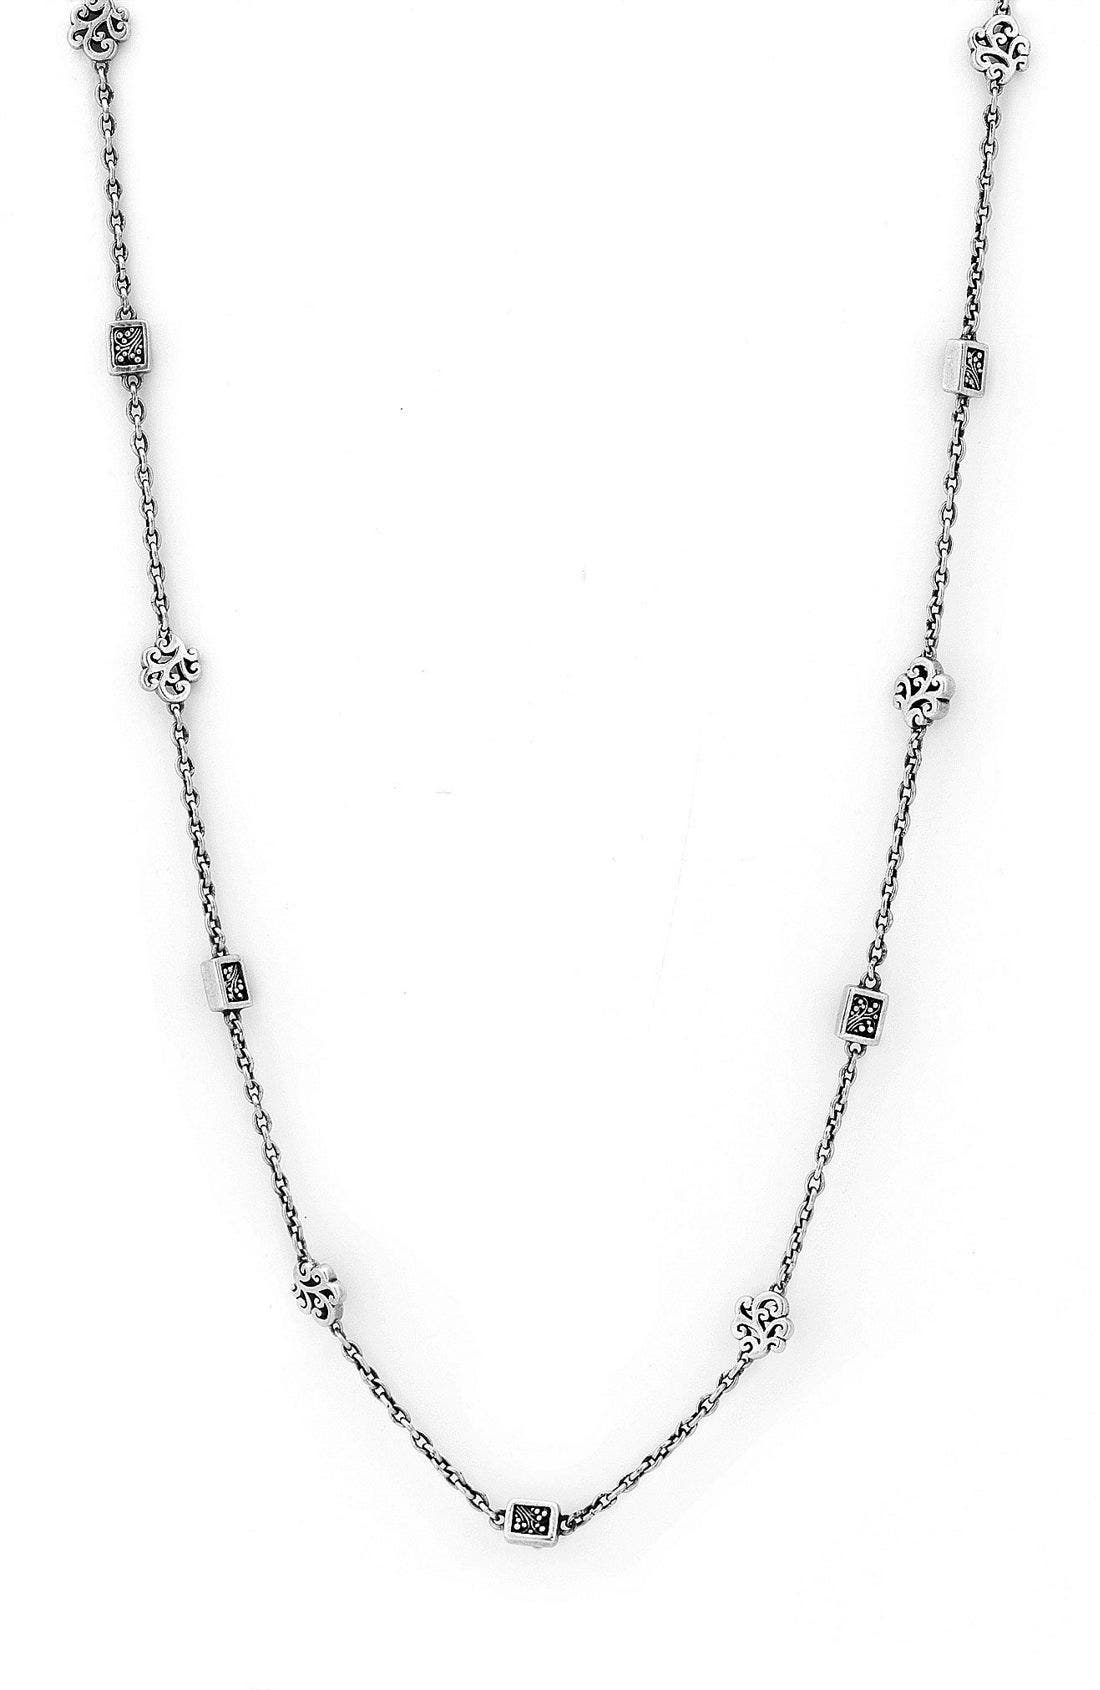 Main Image - Lois Hill Cutout & Granulated Long Strand Necklace